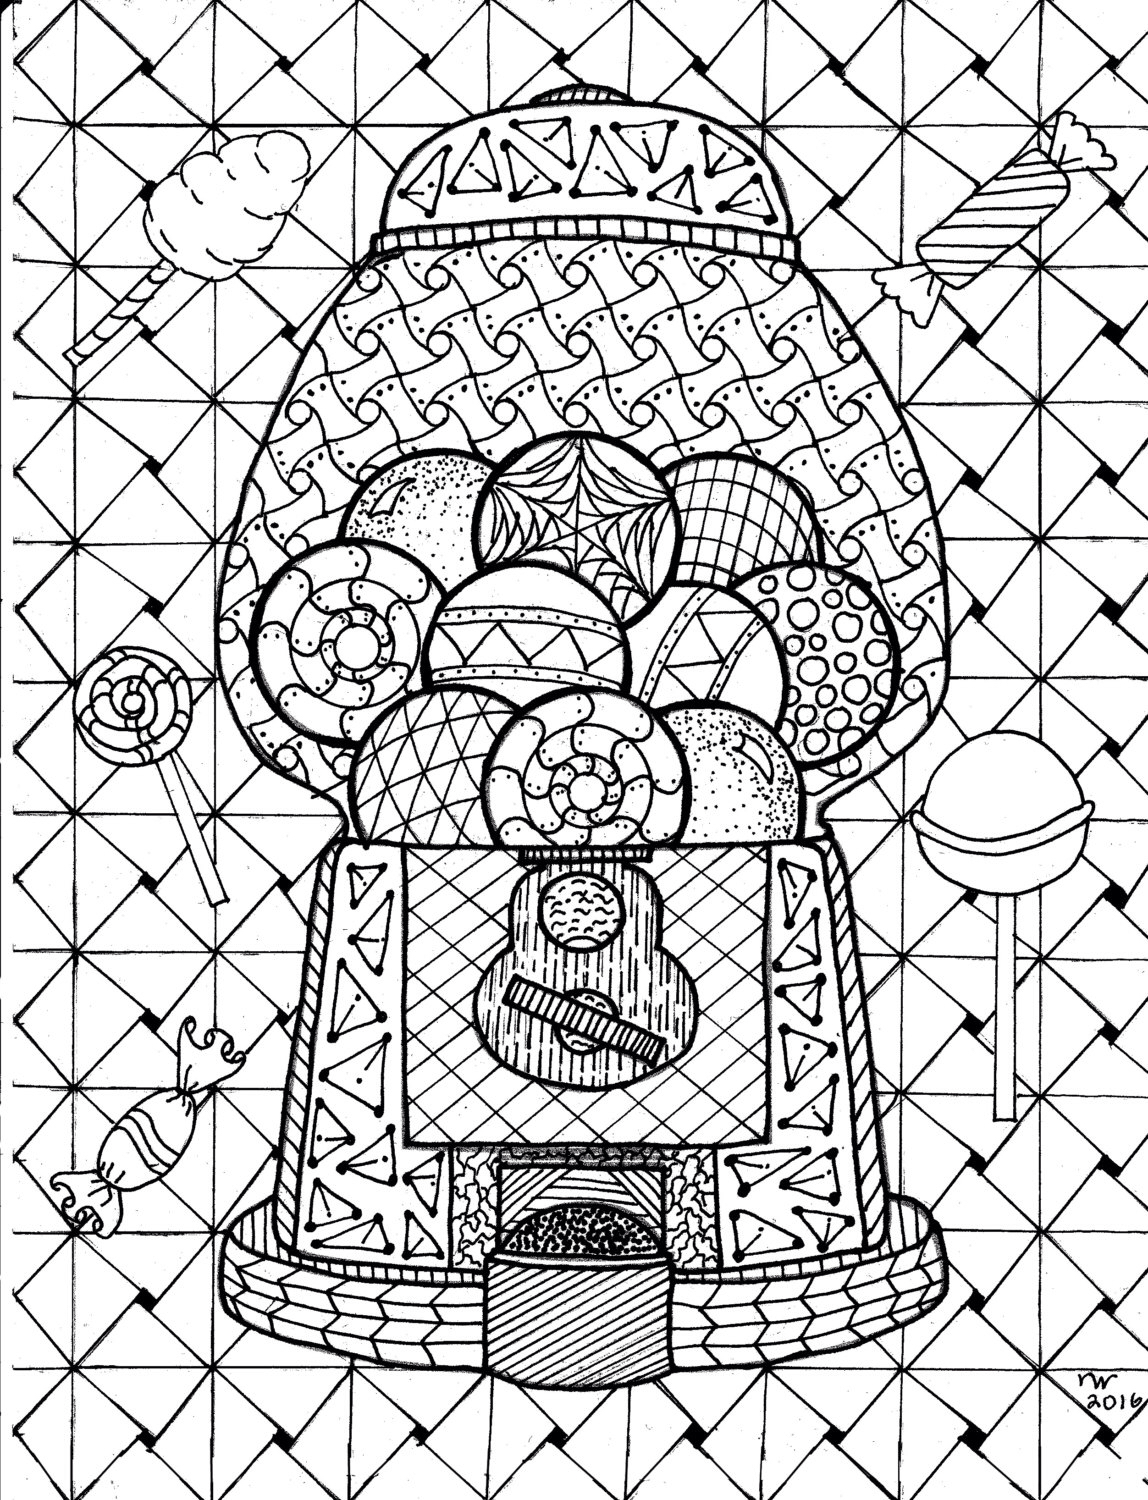 Bubble Gum Machine Drawing at GetDrawings | Free download